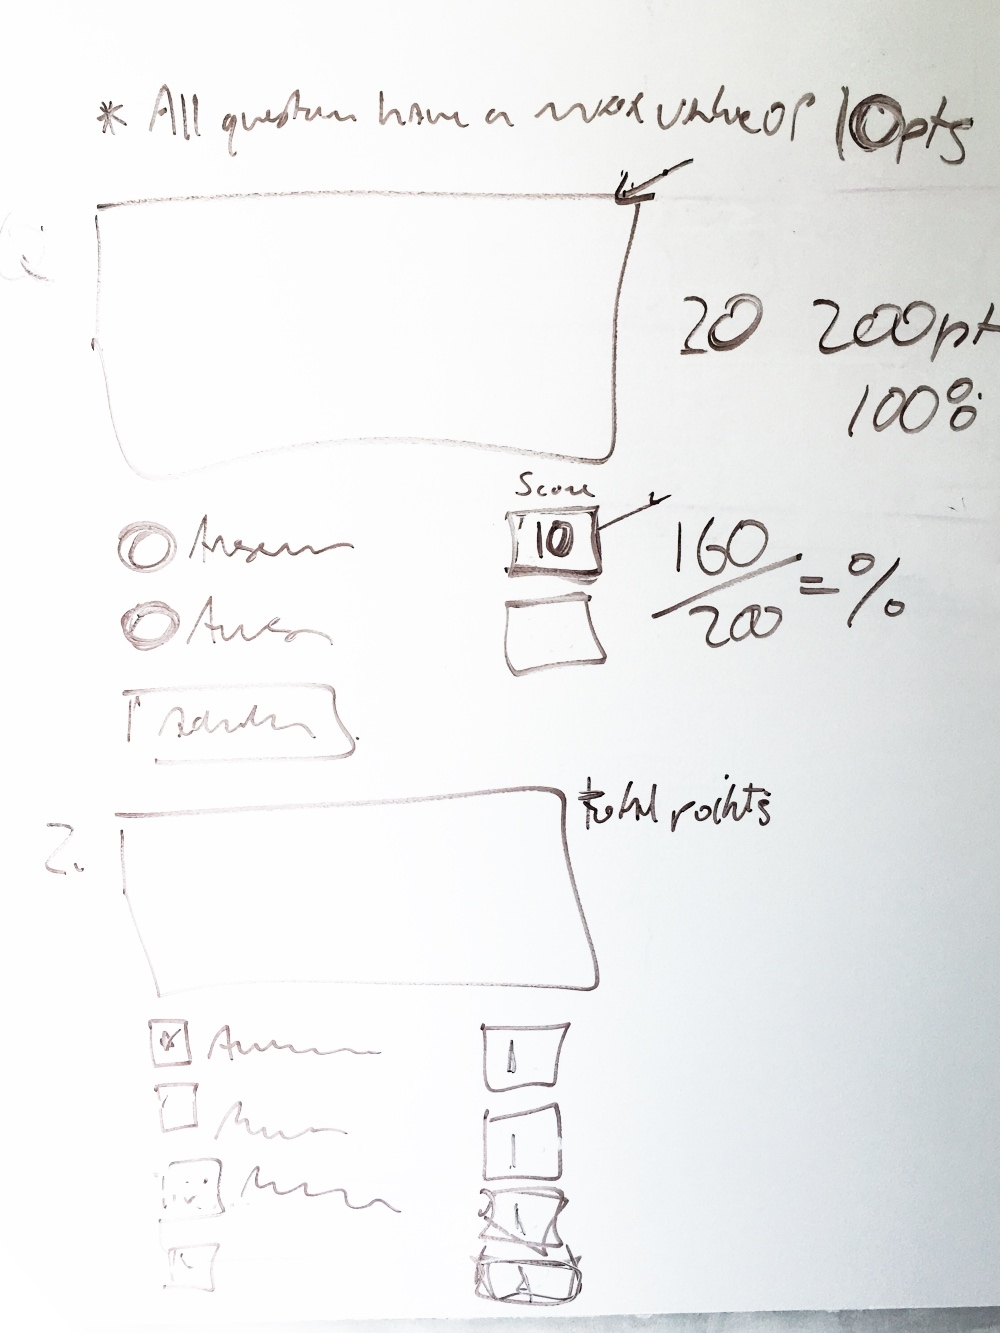 Developing 'Questions' config sketch